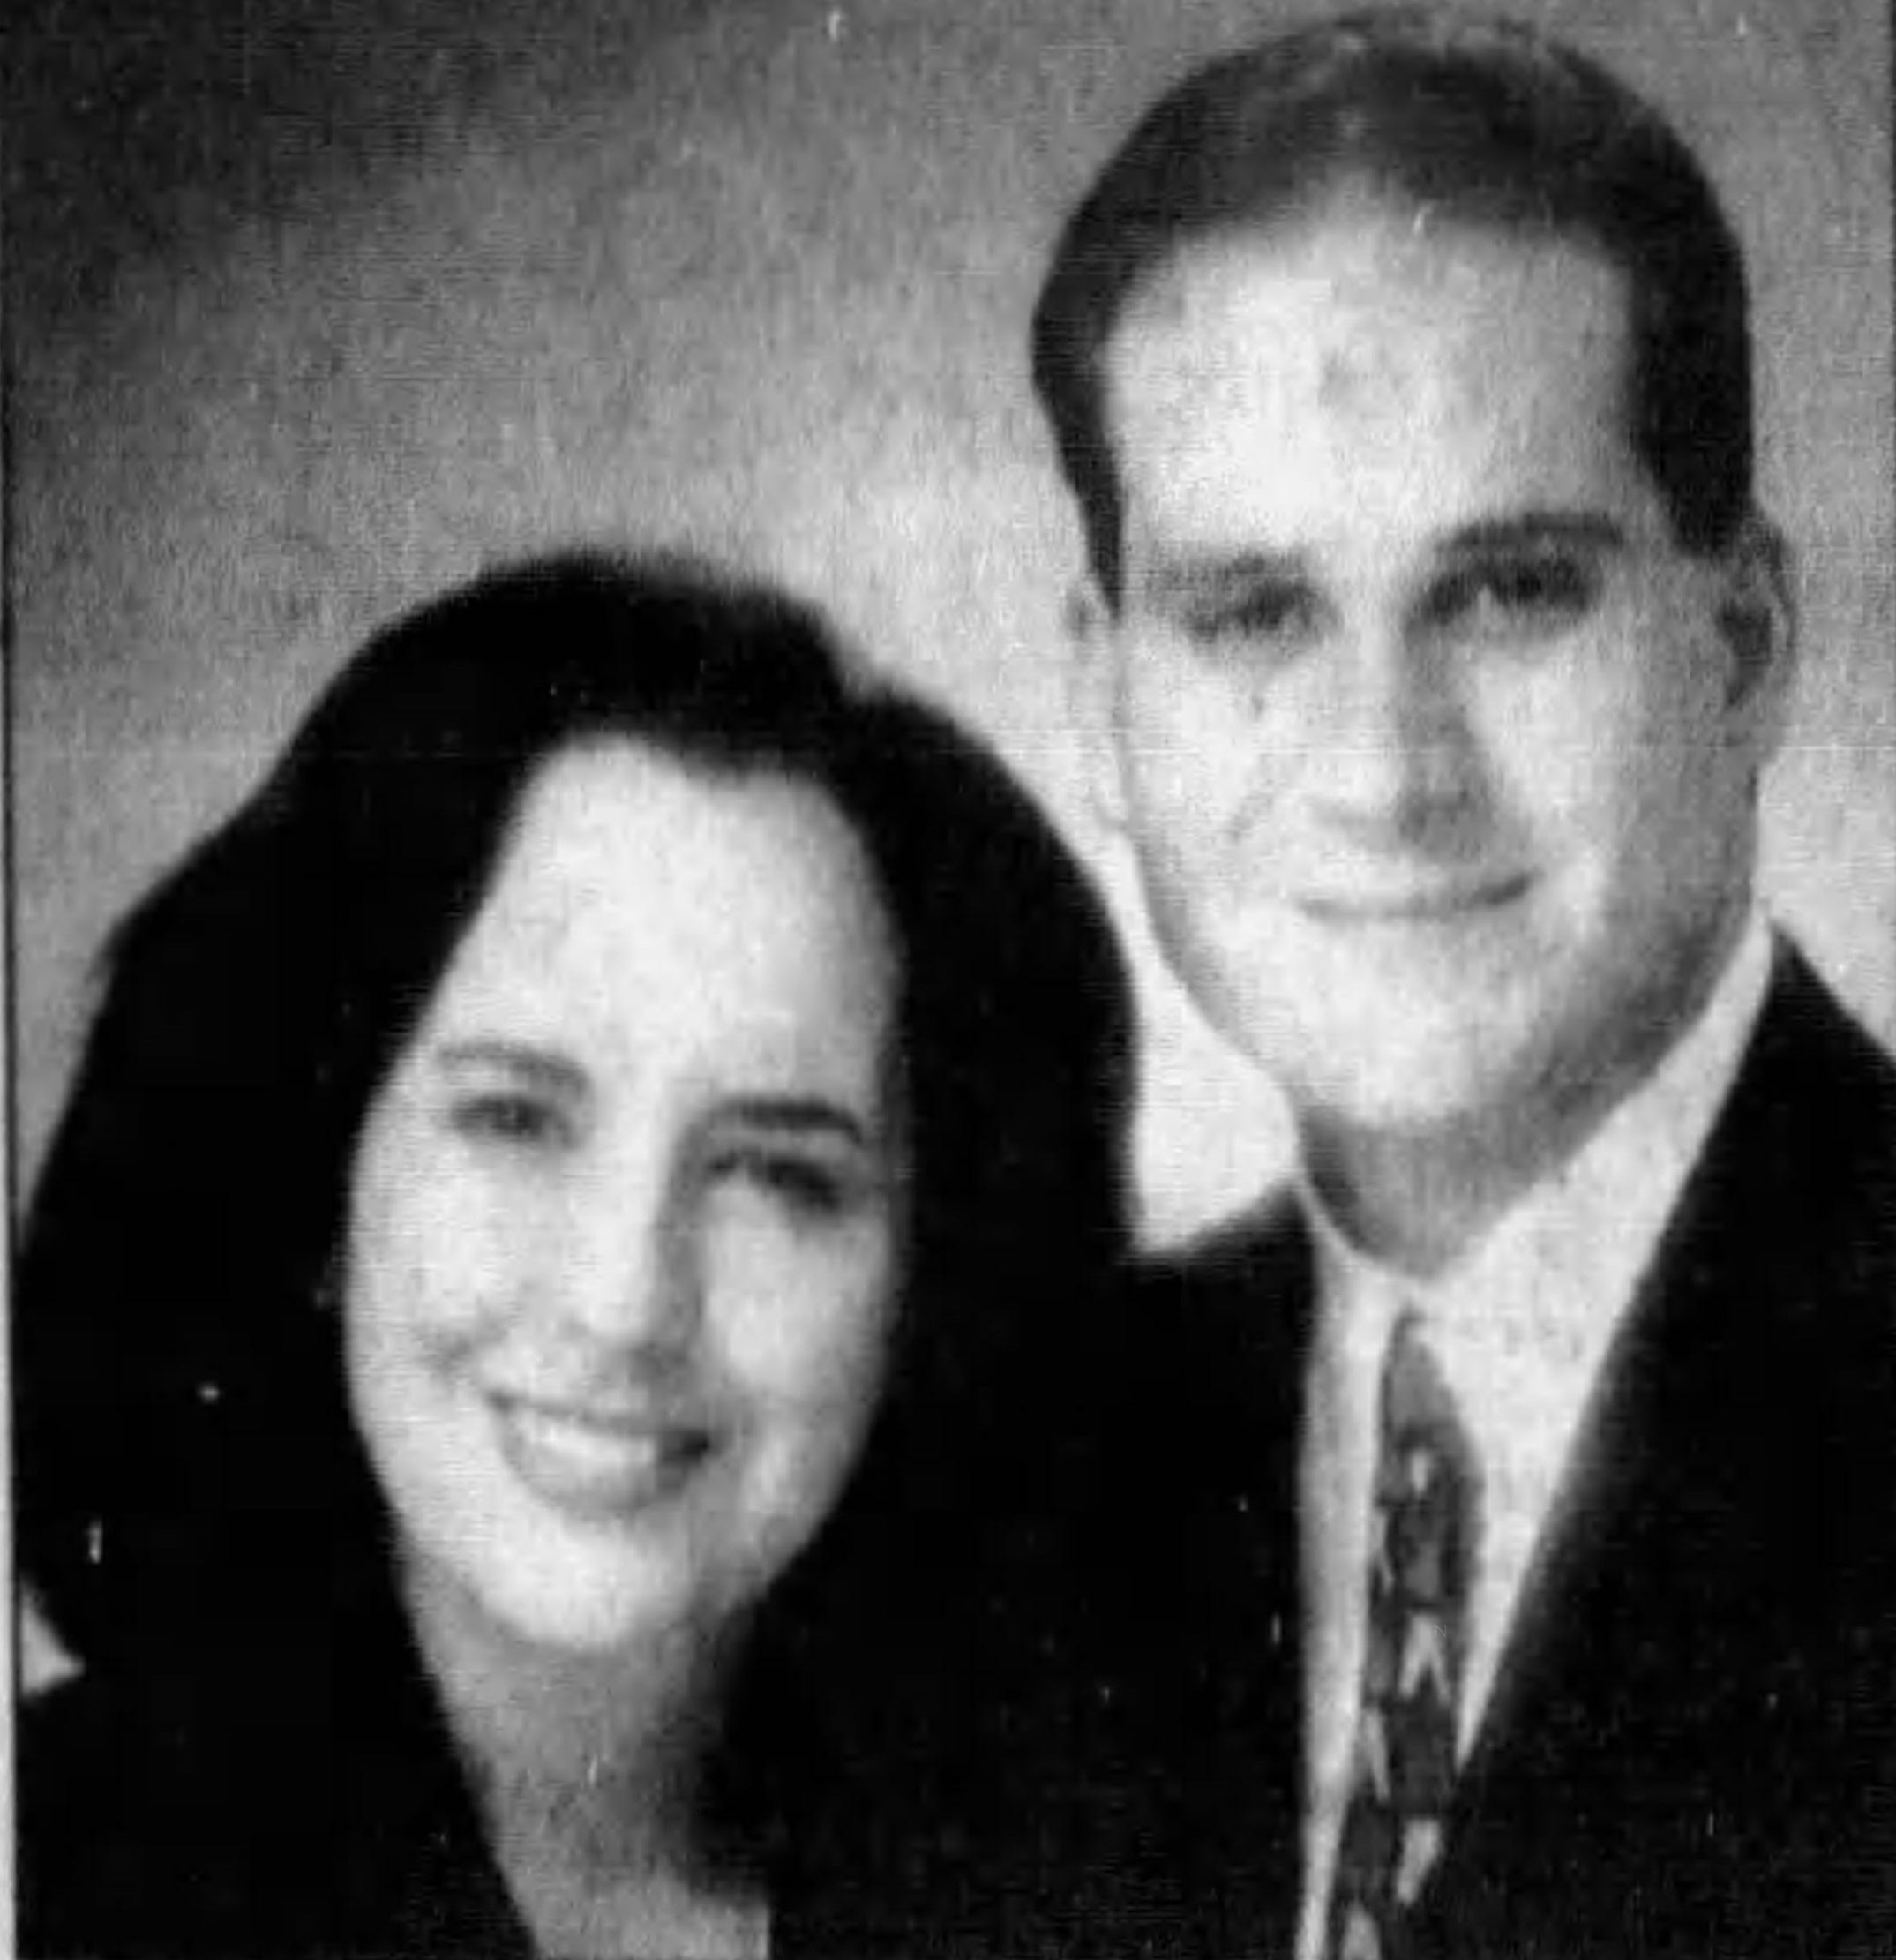 Mystery Surrounds Shooting Of Kaufmann Couple Central El Paso Lawyers